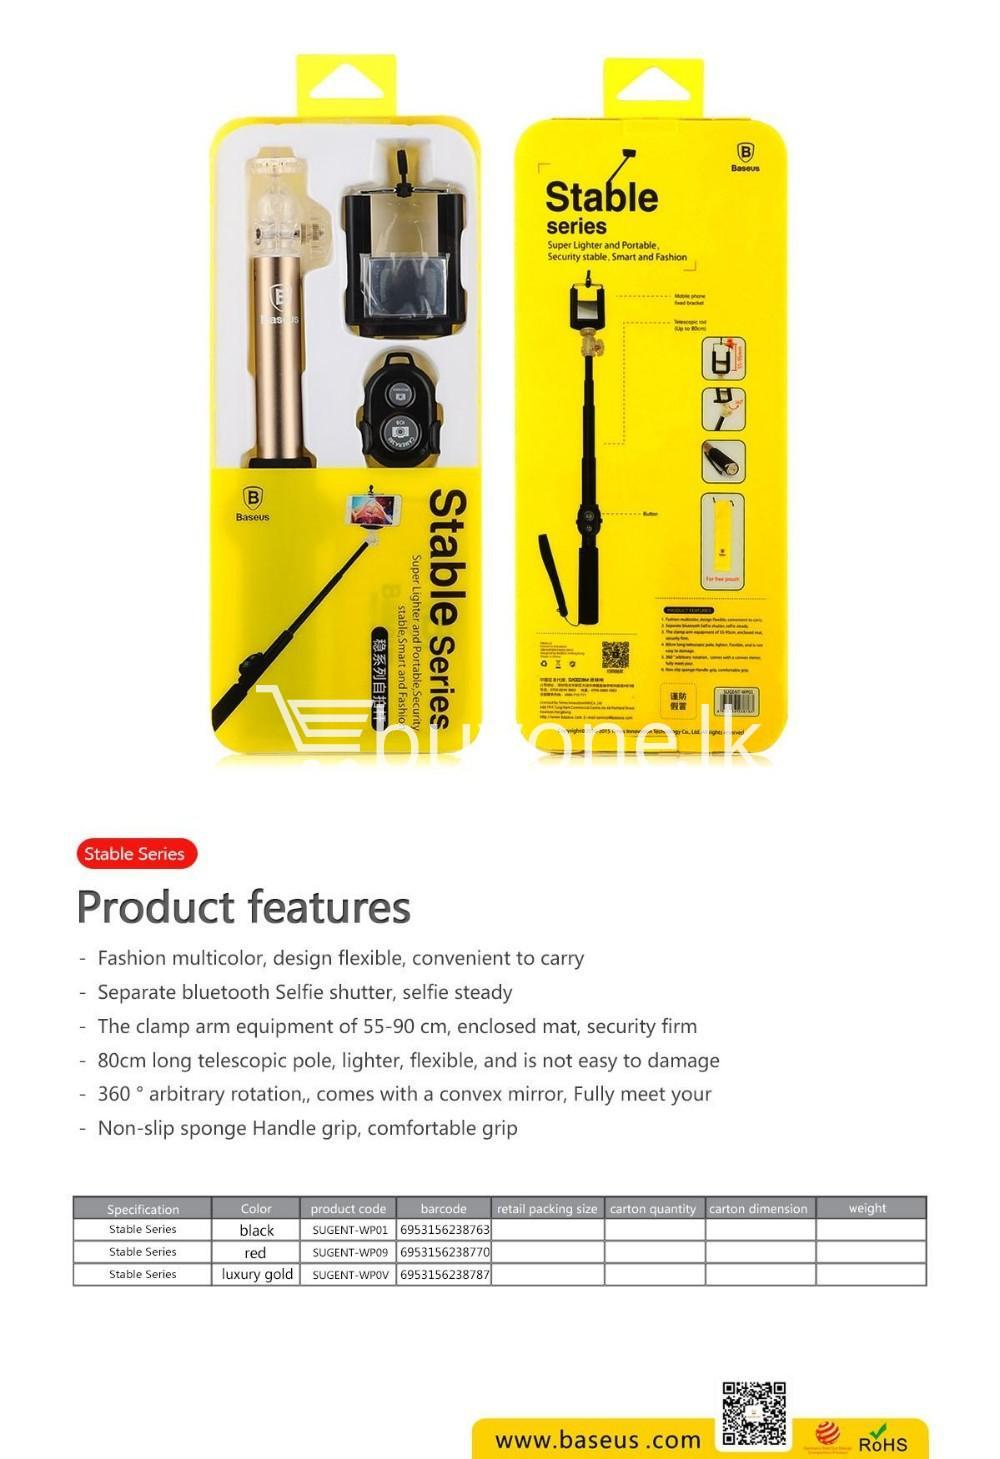 baseus stable series handheld extendable selfie stick with selfie remote mobile store special best offer buy one lk sri lanka 46189 - Baseus Stable Series Handheld Extendable Selfie Stick with Selfie Remote